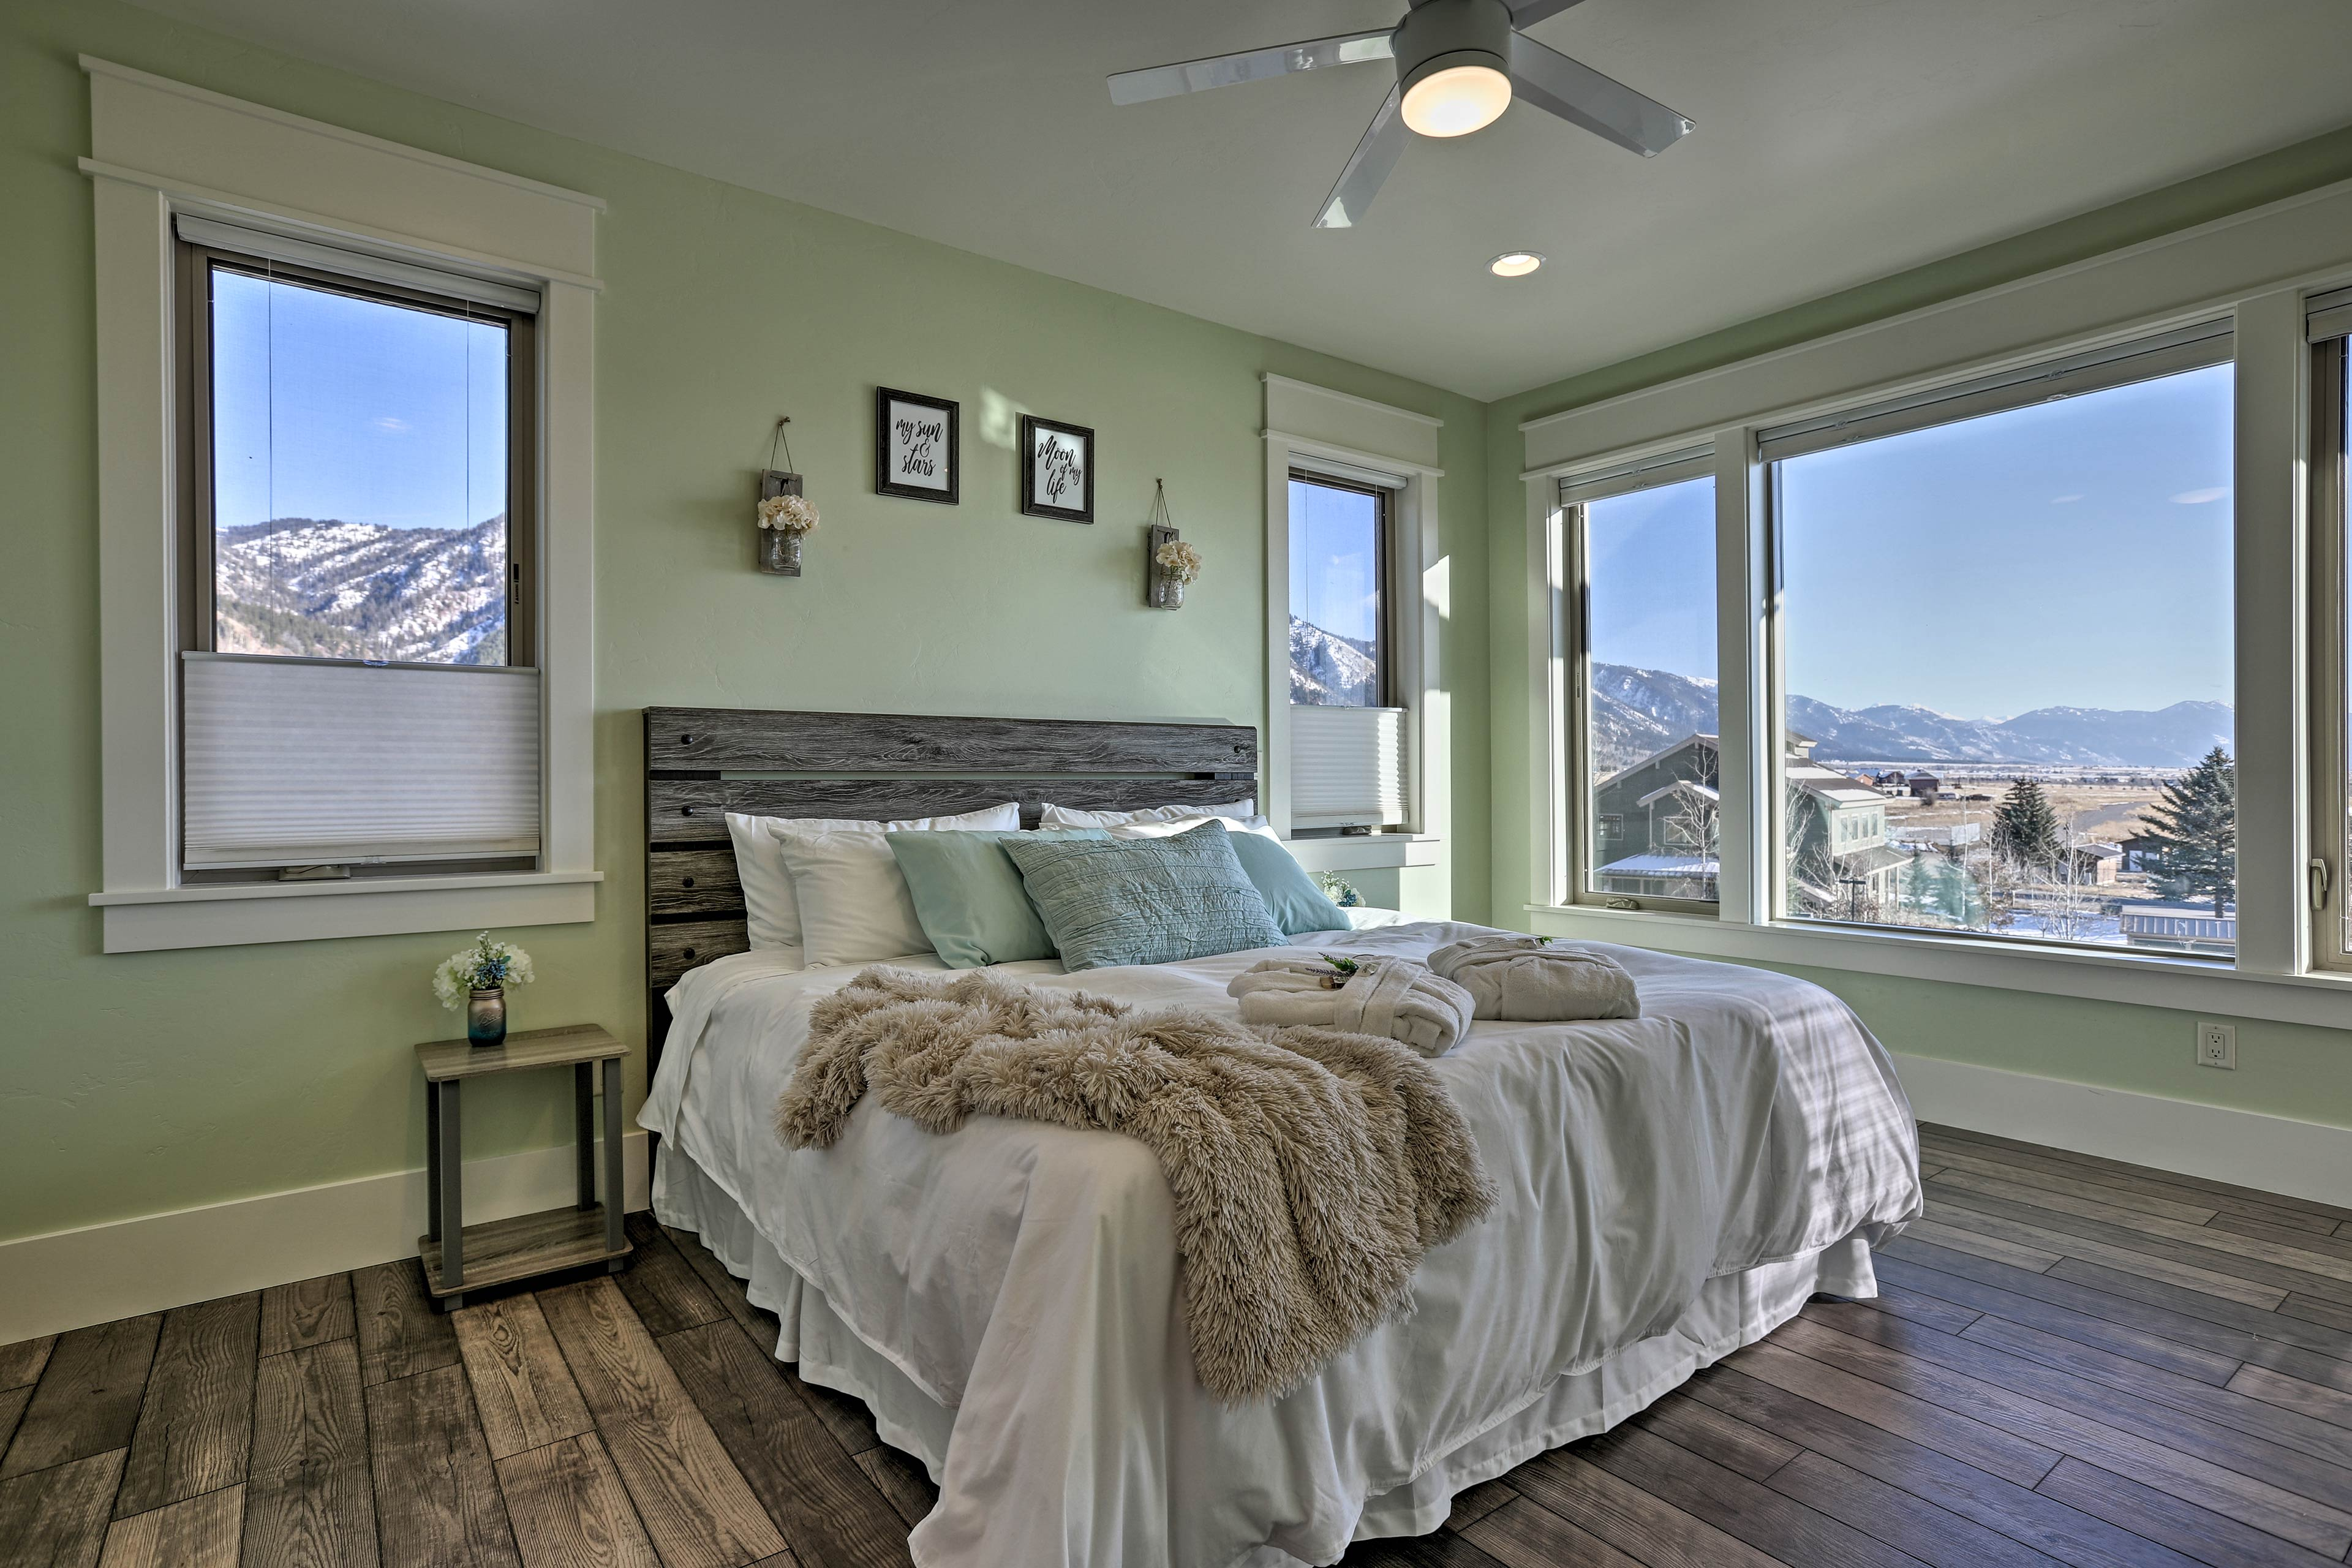 Heads of the household will be treated to this beautiful master suite.